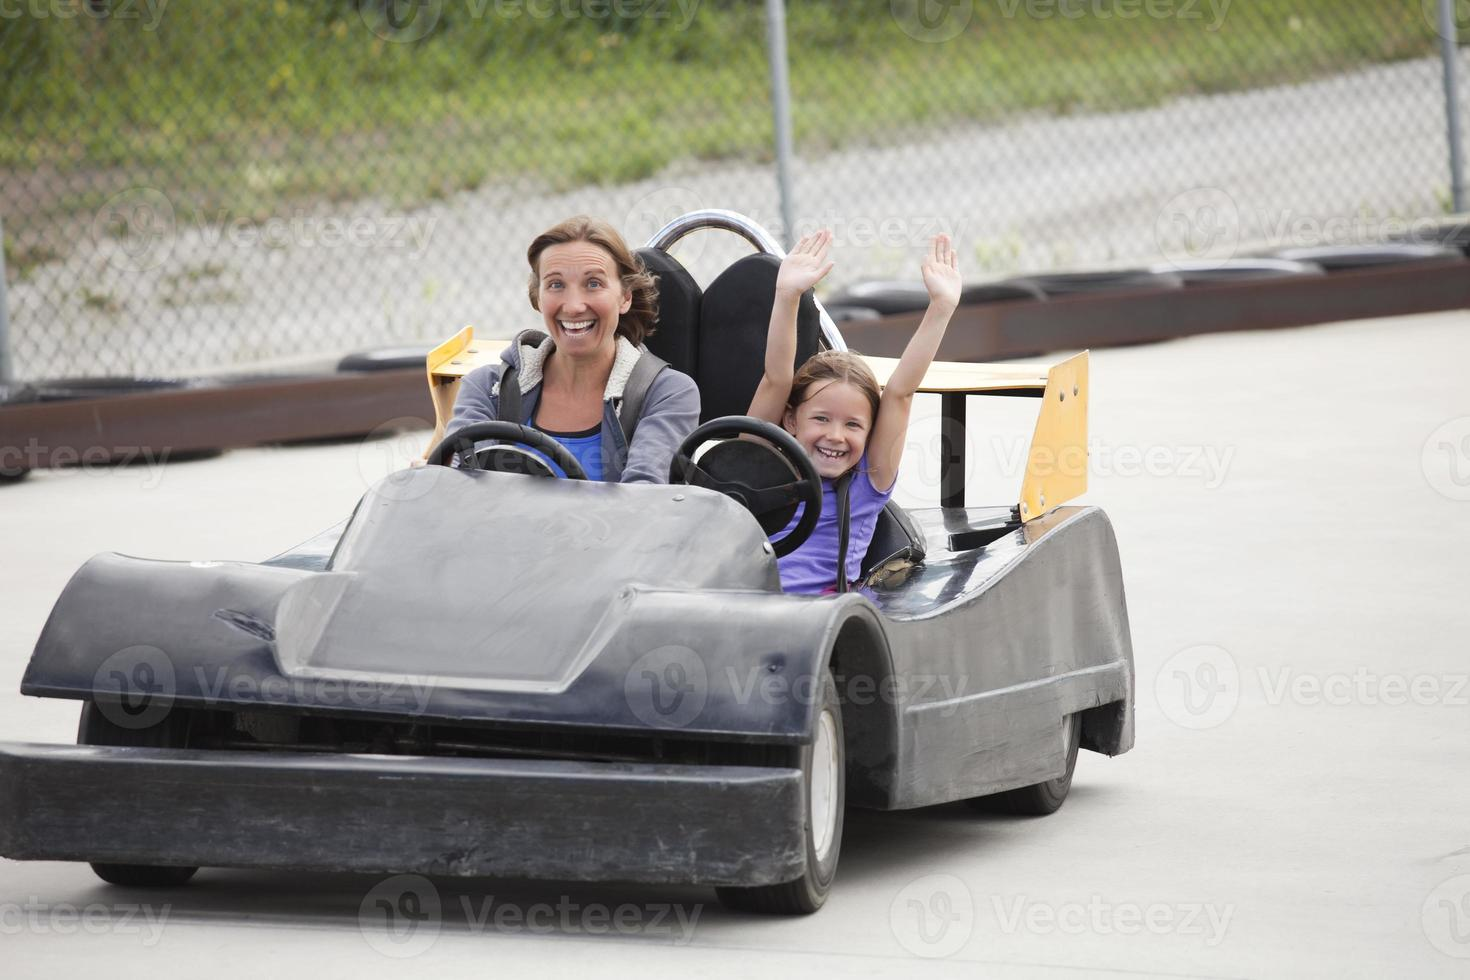 Go-Carting photo